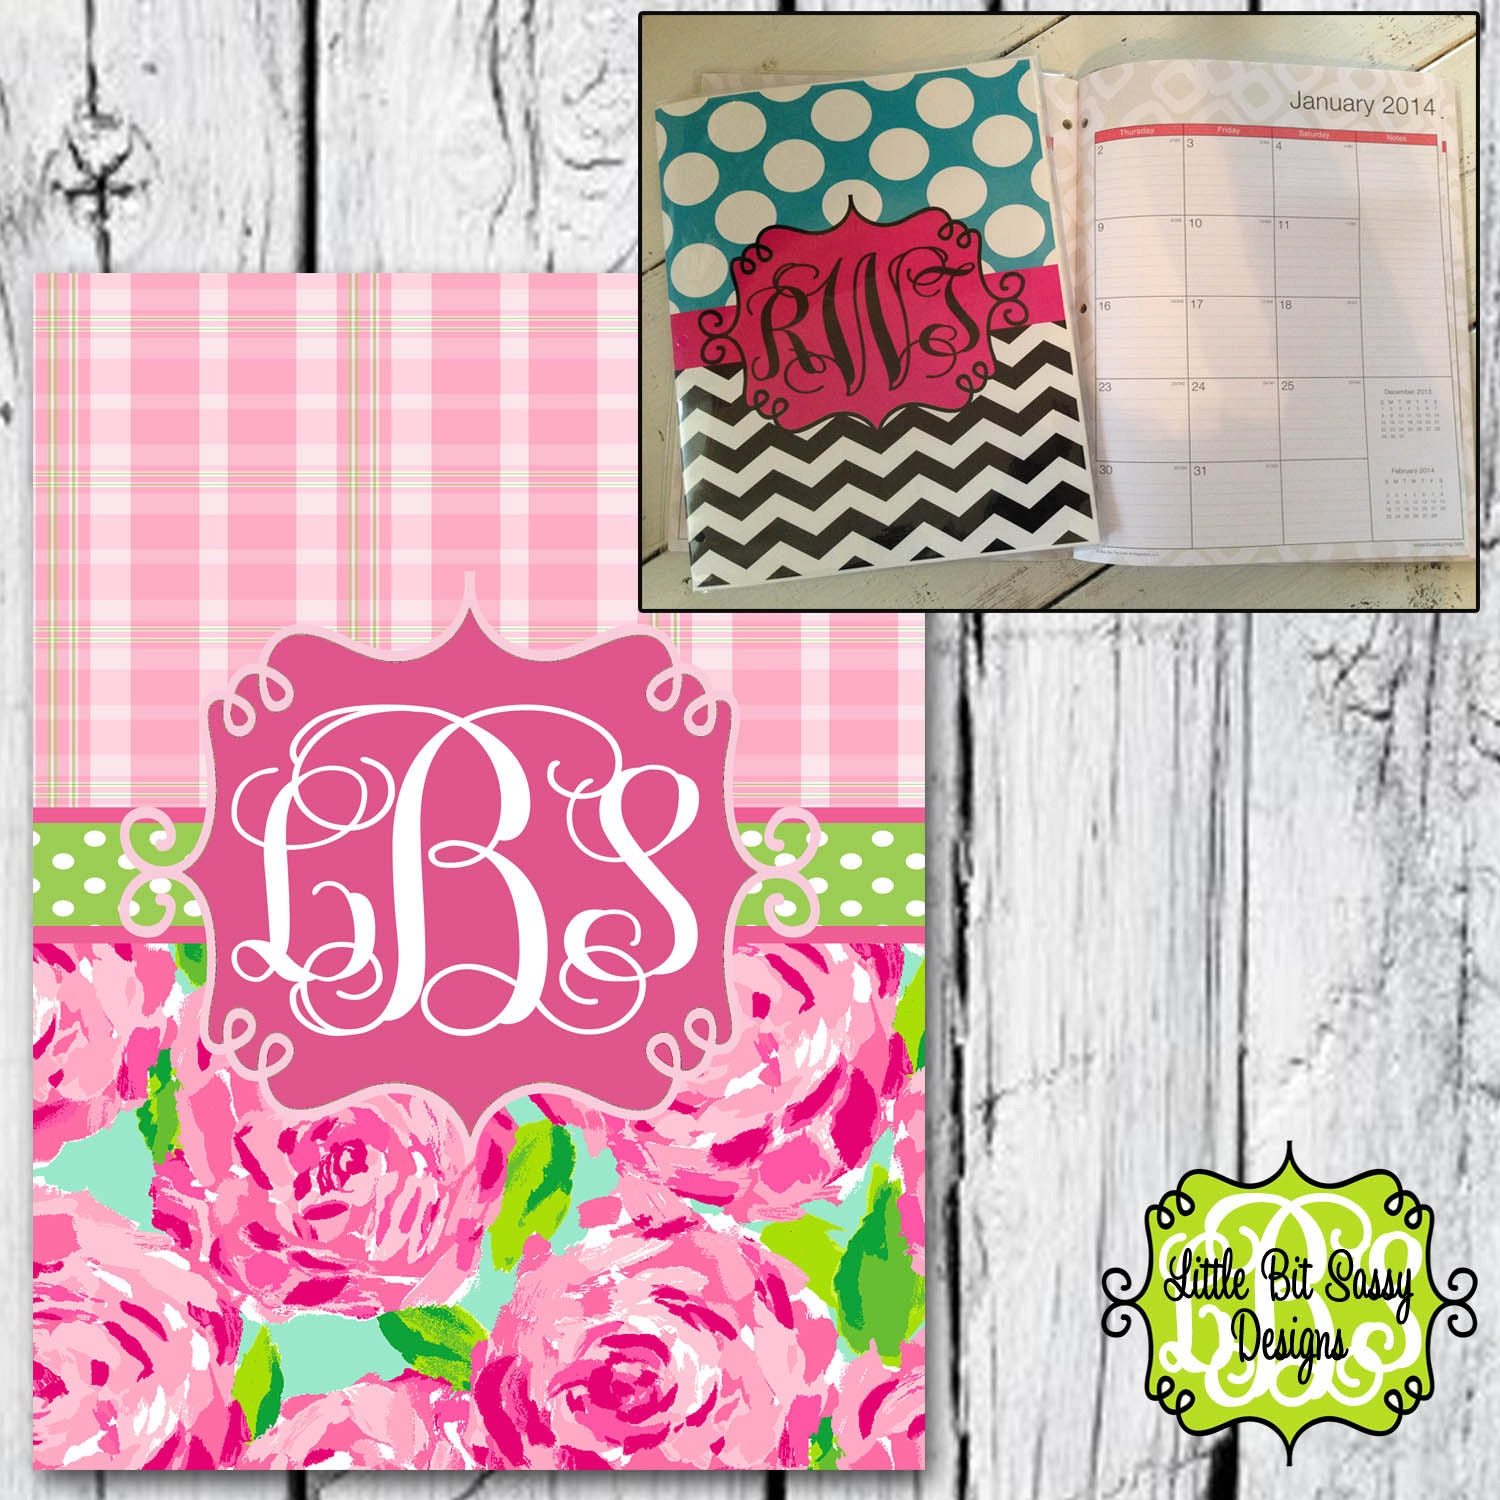 Monogrammed Floor Mats >> Personalized Planner Monthly Calendar Monogrammed Lilly